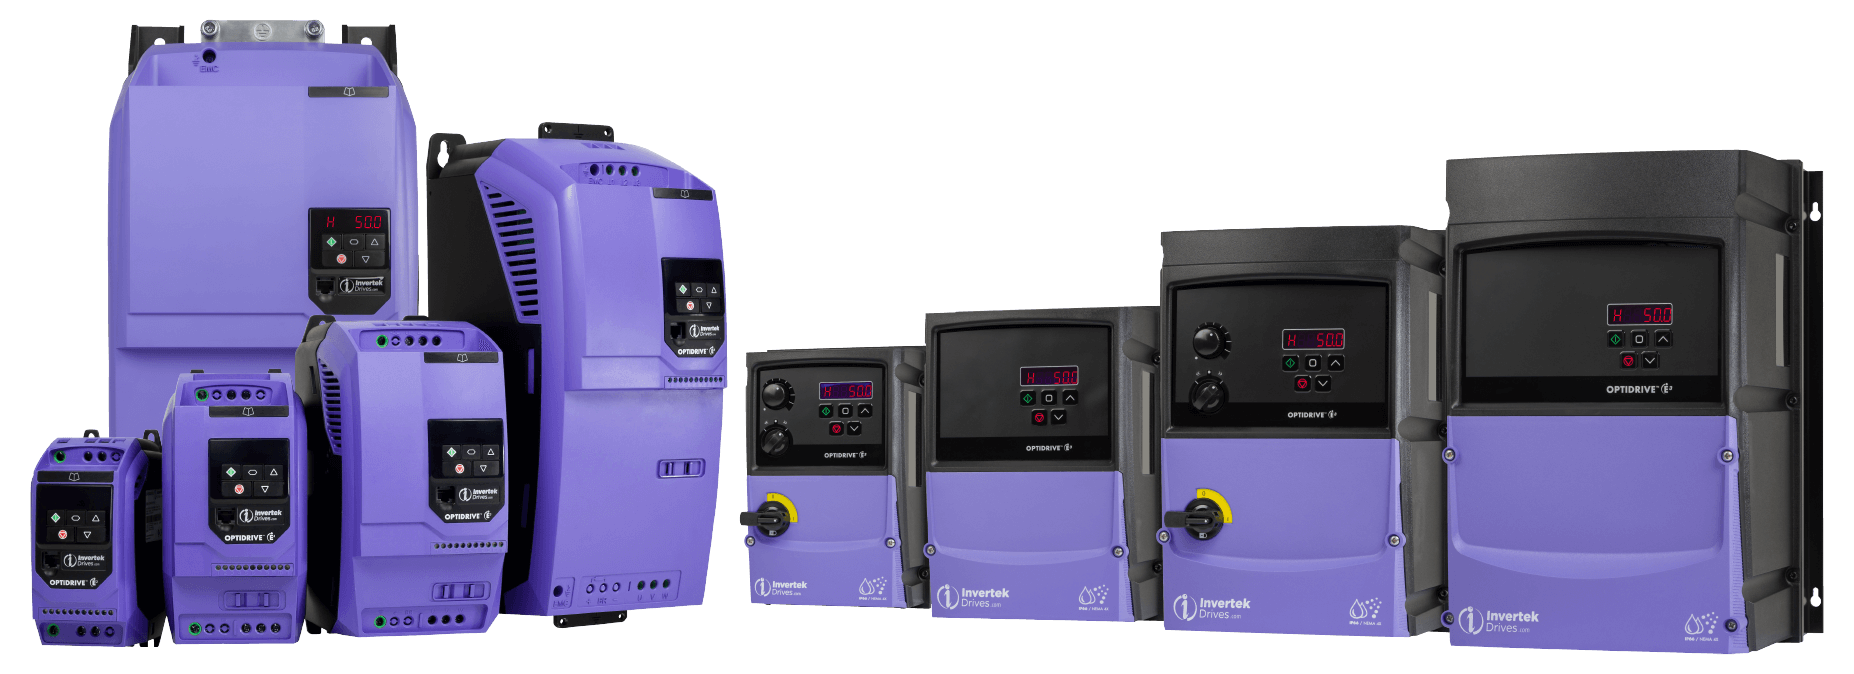 Optidrive E3 Variable Frequency Drives